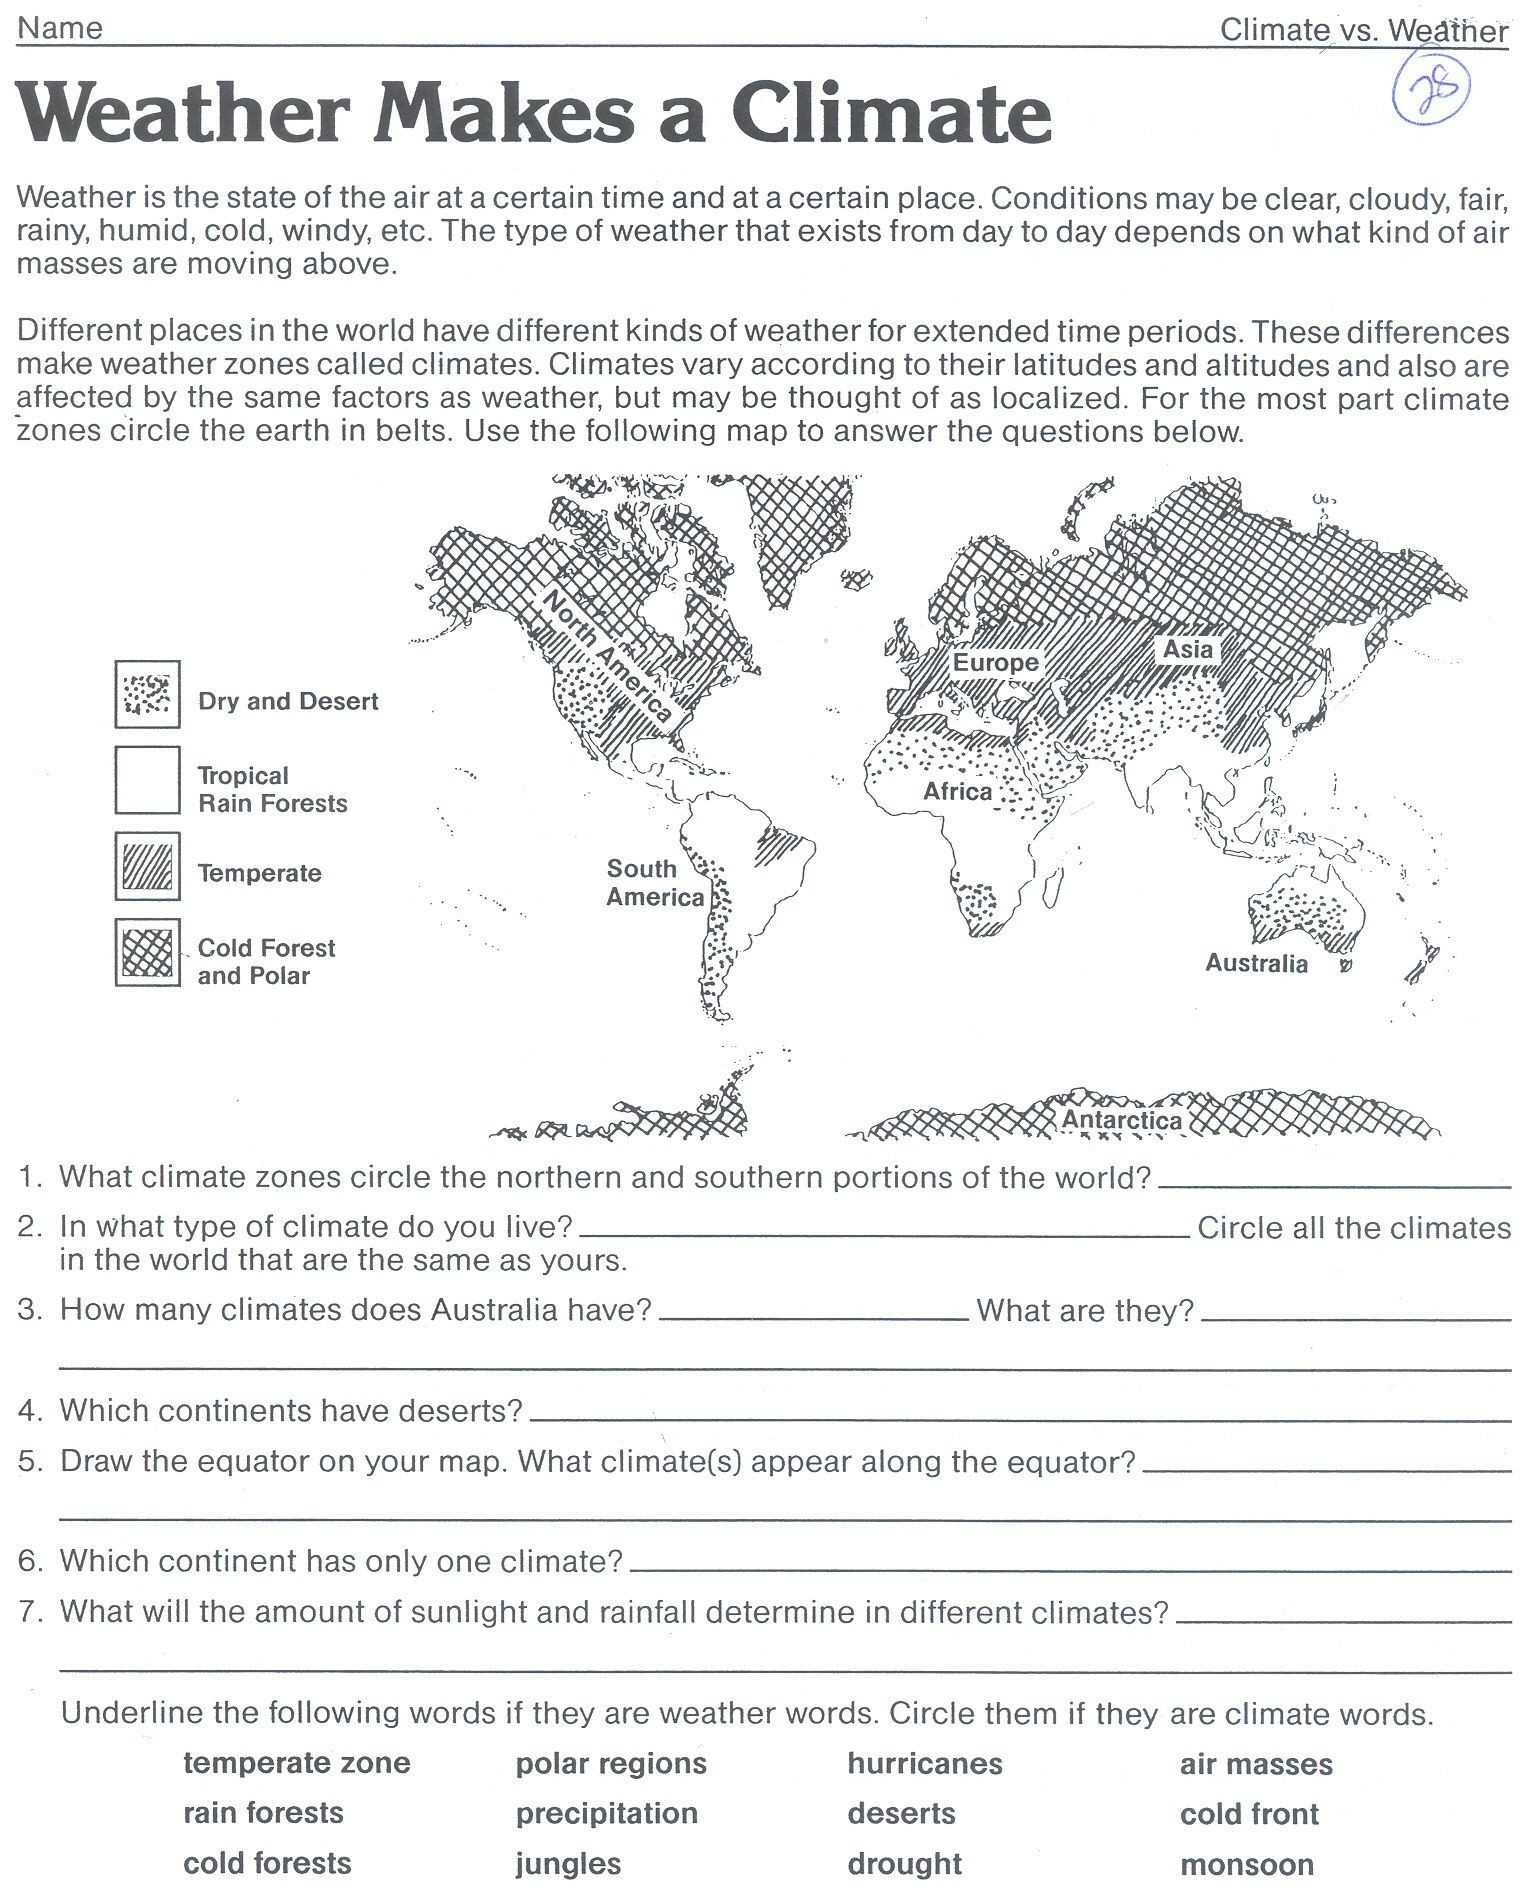 Biomes Worksheet 5th Grade Weather Makes A Climate Worksheet